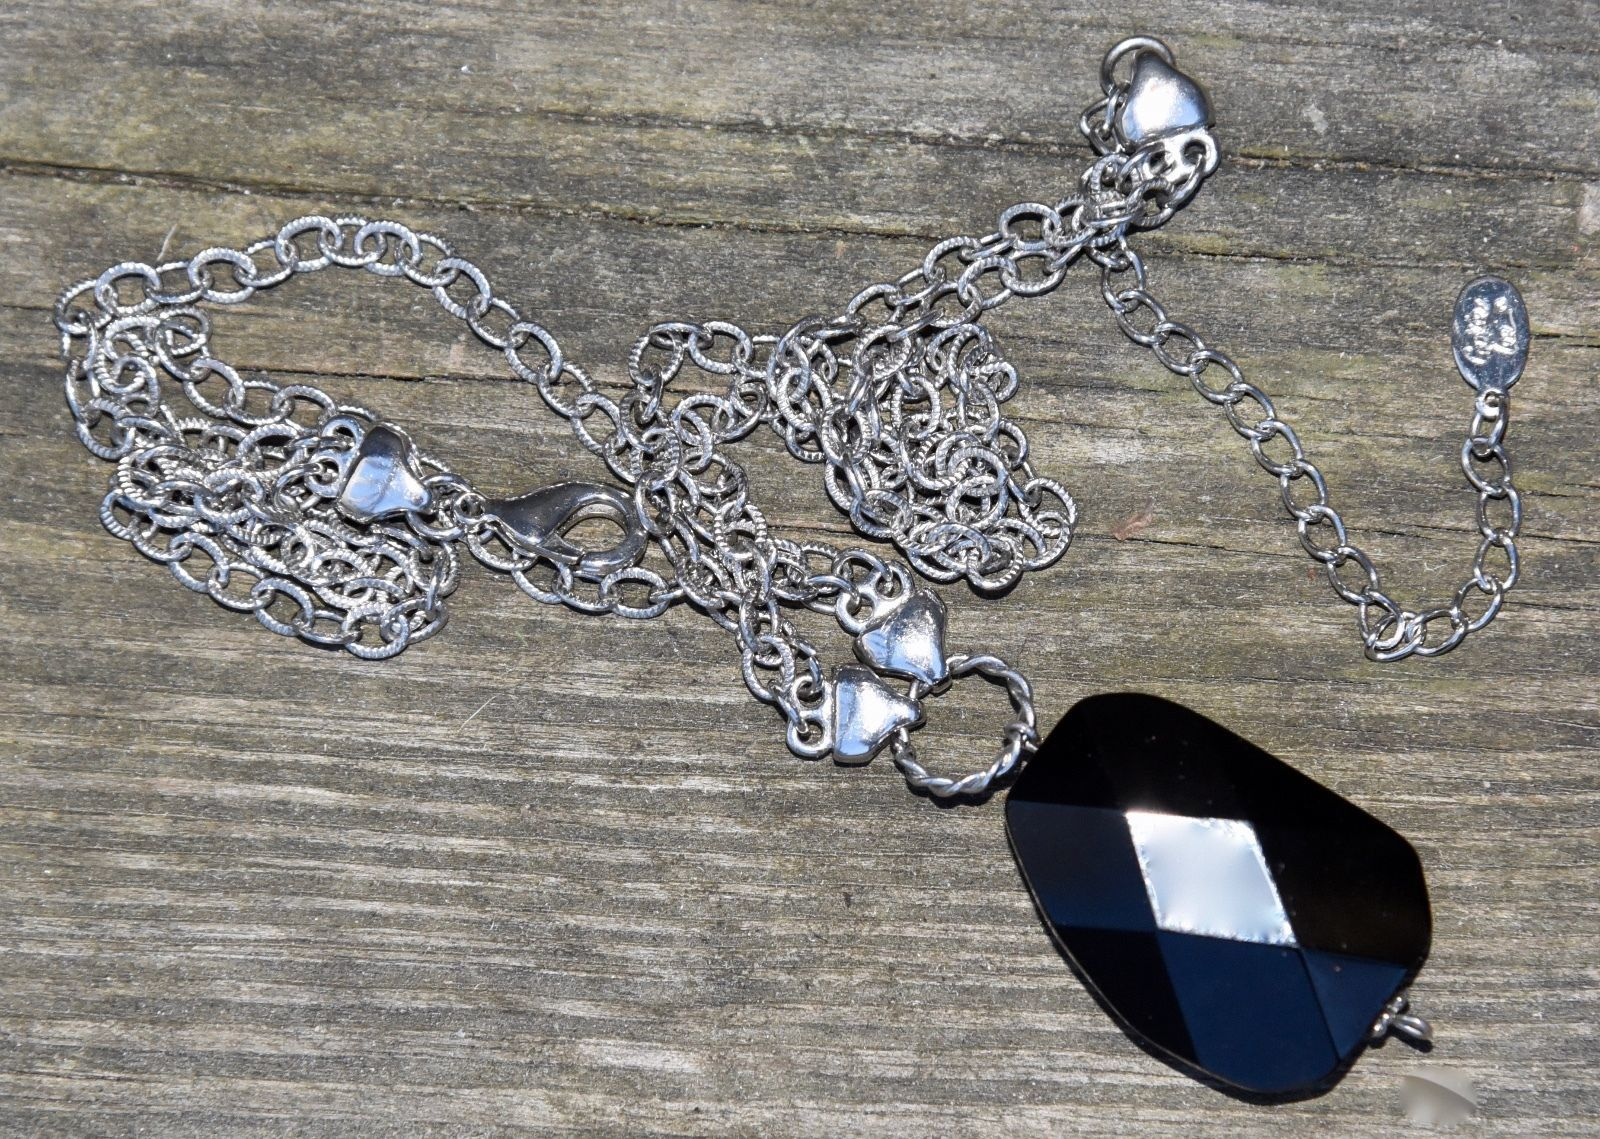 COOKIE LEE DESIGNER NECKLACE FACETED GLASS SILVER TONE METAL CHAIN COSTUME 15""